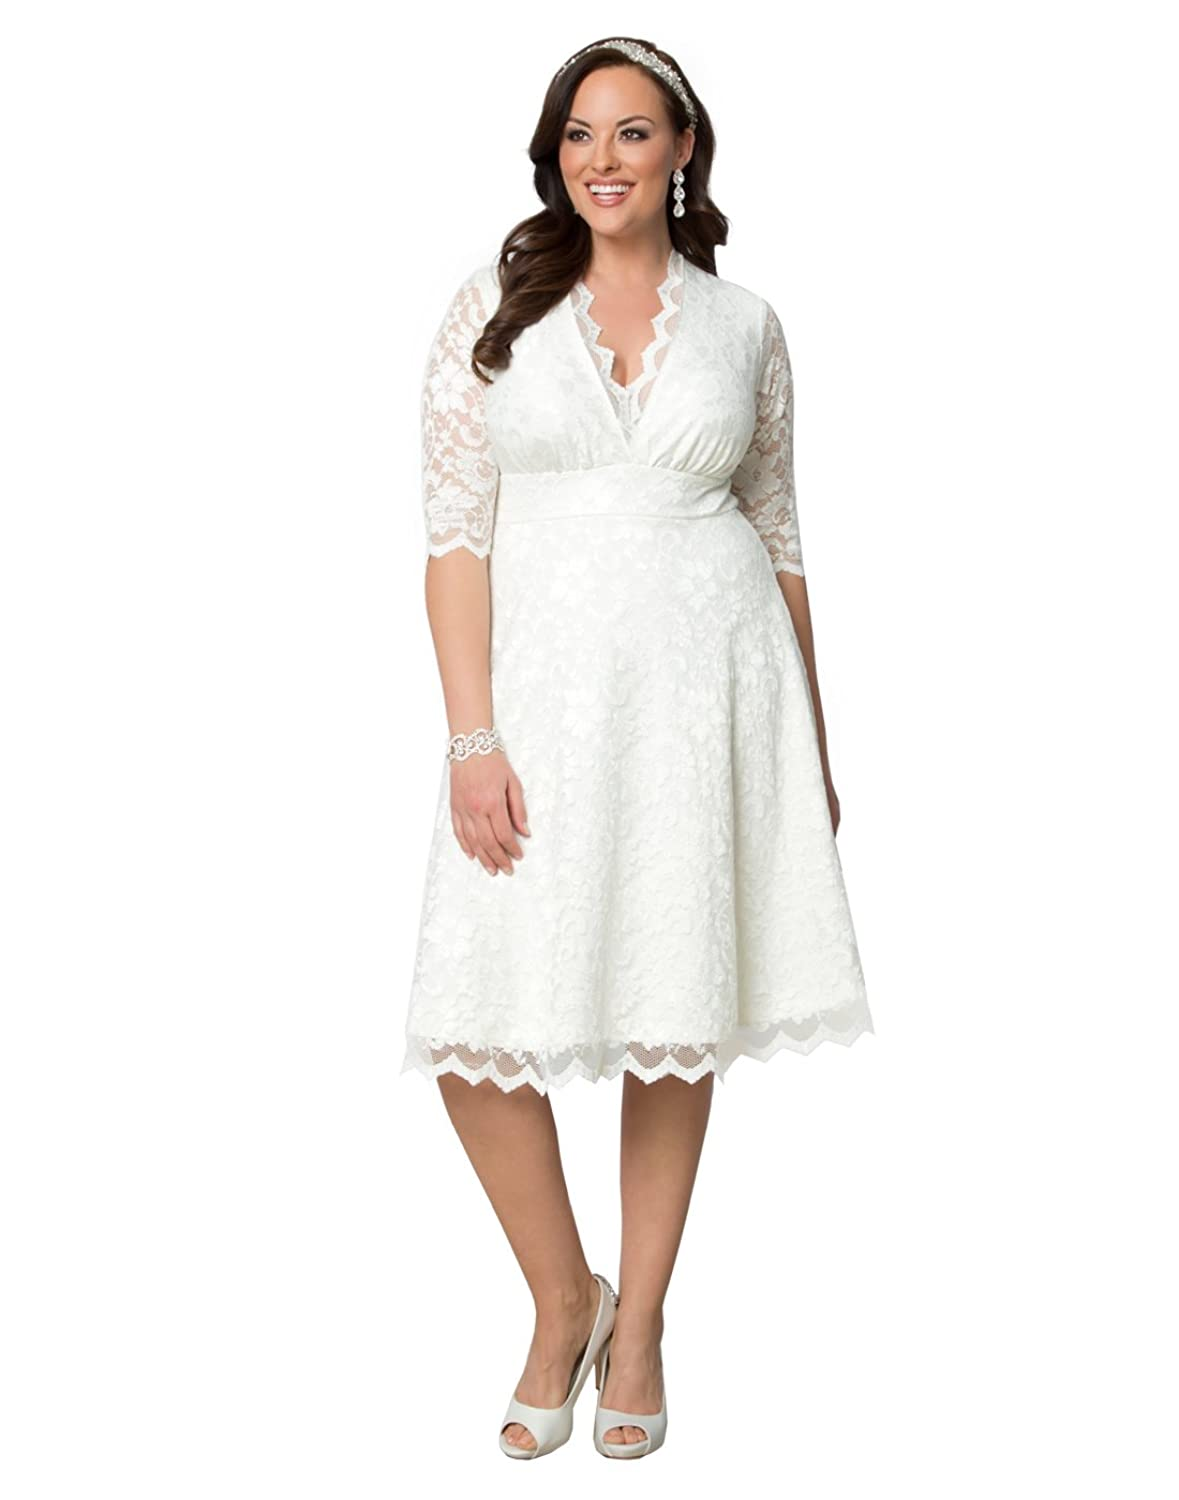 1960s Style Dresses- Retro Inspired Fashion Kiyonna Womens Plus Size Wedding Belle Dress $248.00 AT vintagedancer.com